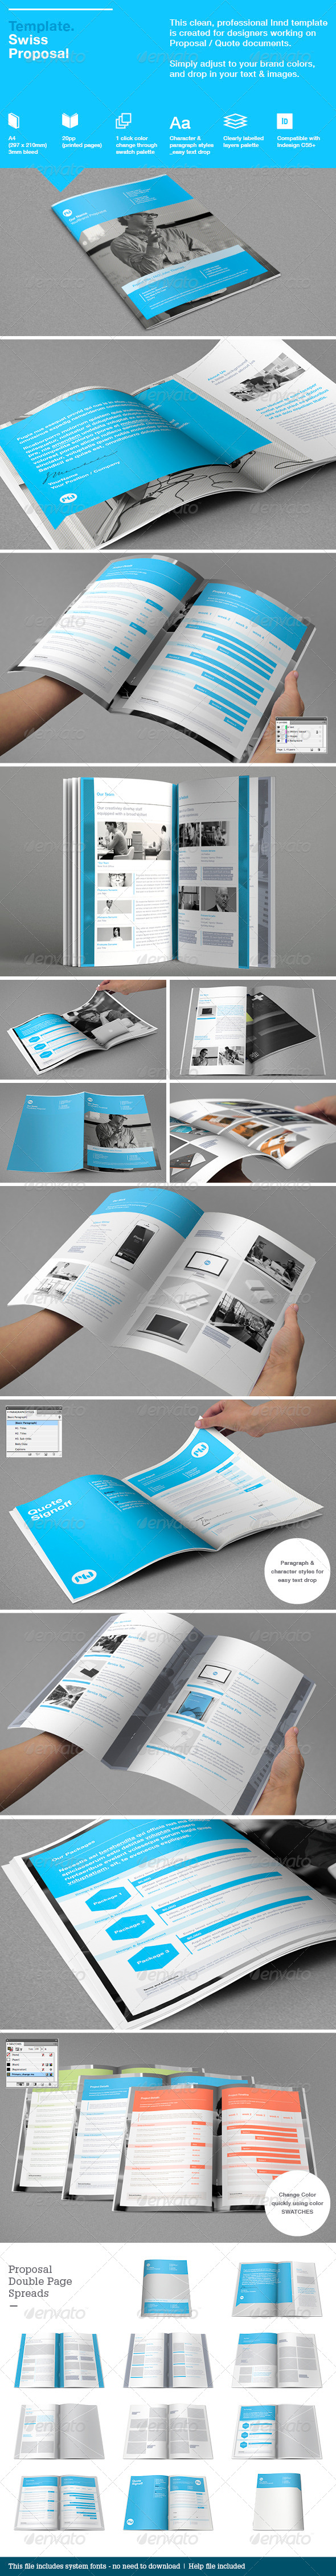 Swiss Proposal Template - Brochures Print Templates